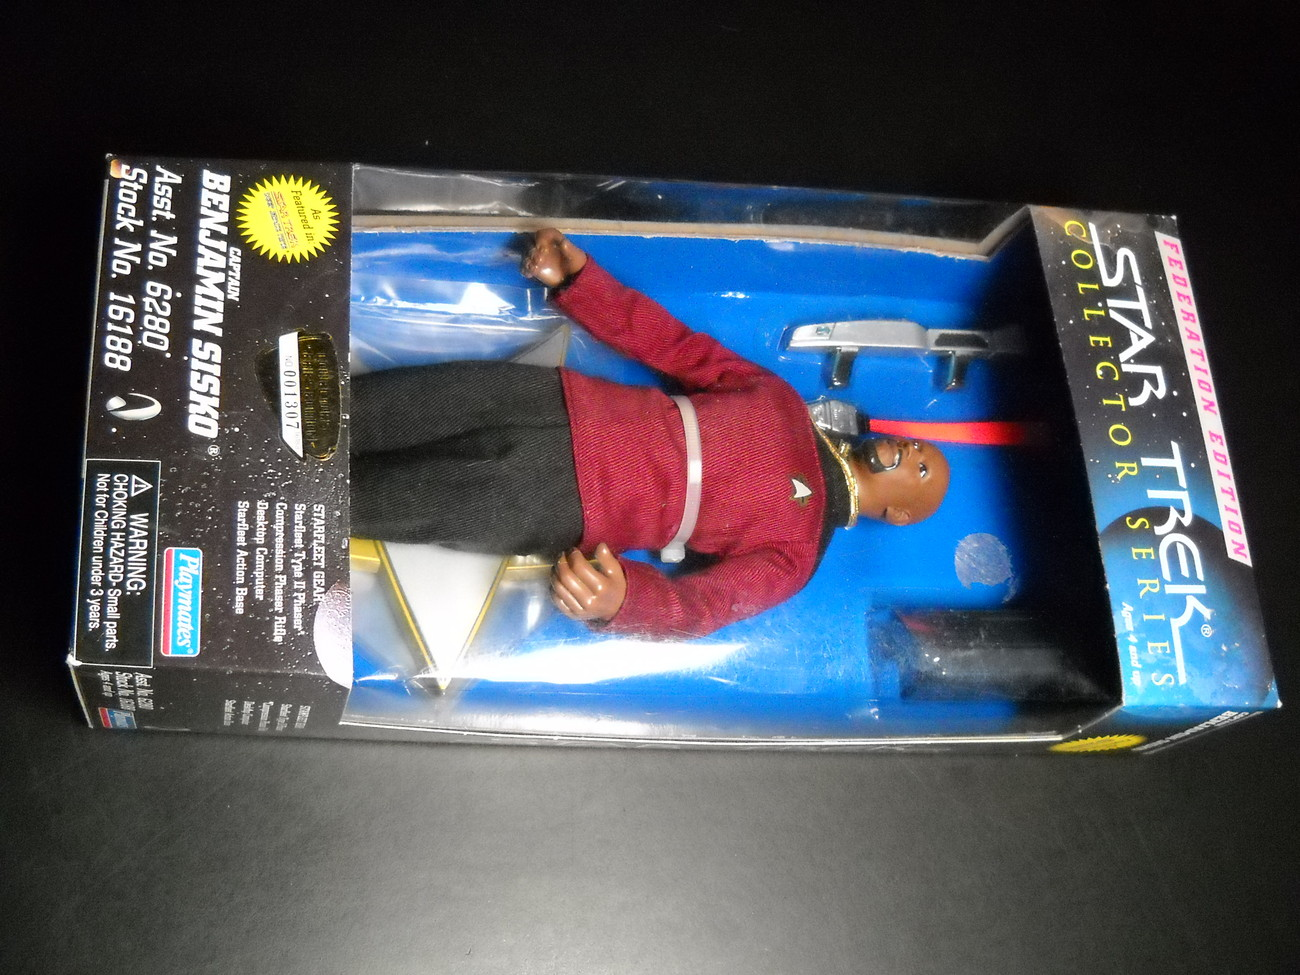 Toy star trek playmates federation edition captain benjamin sisko 9 inch 1997 boxed sealed 01